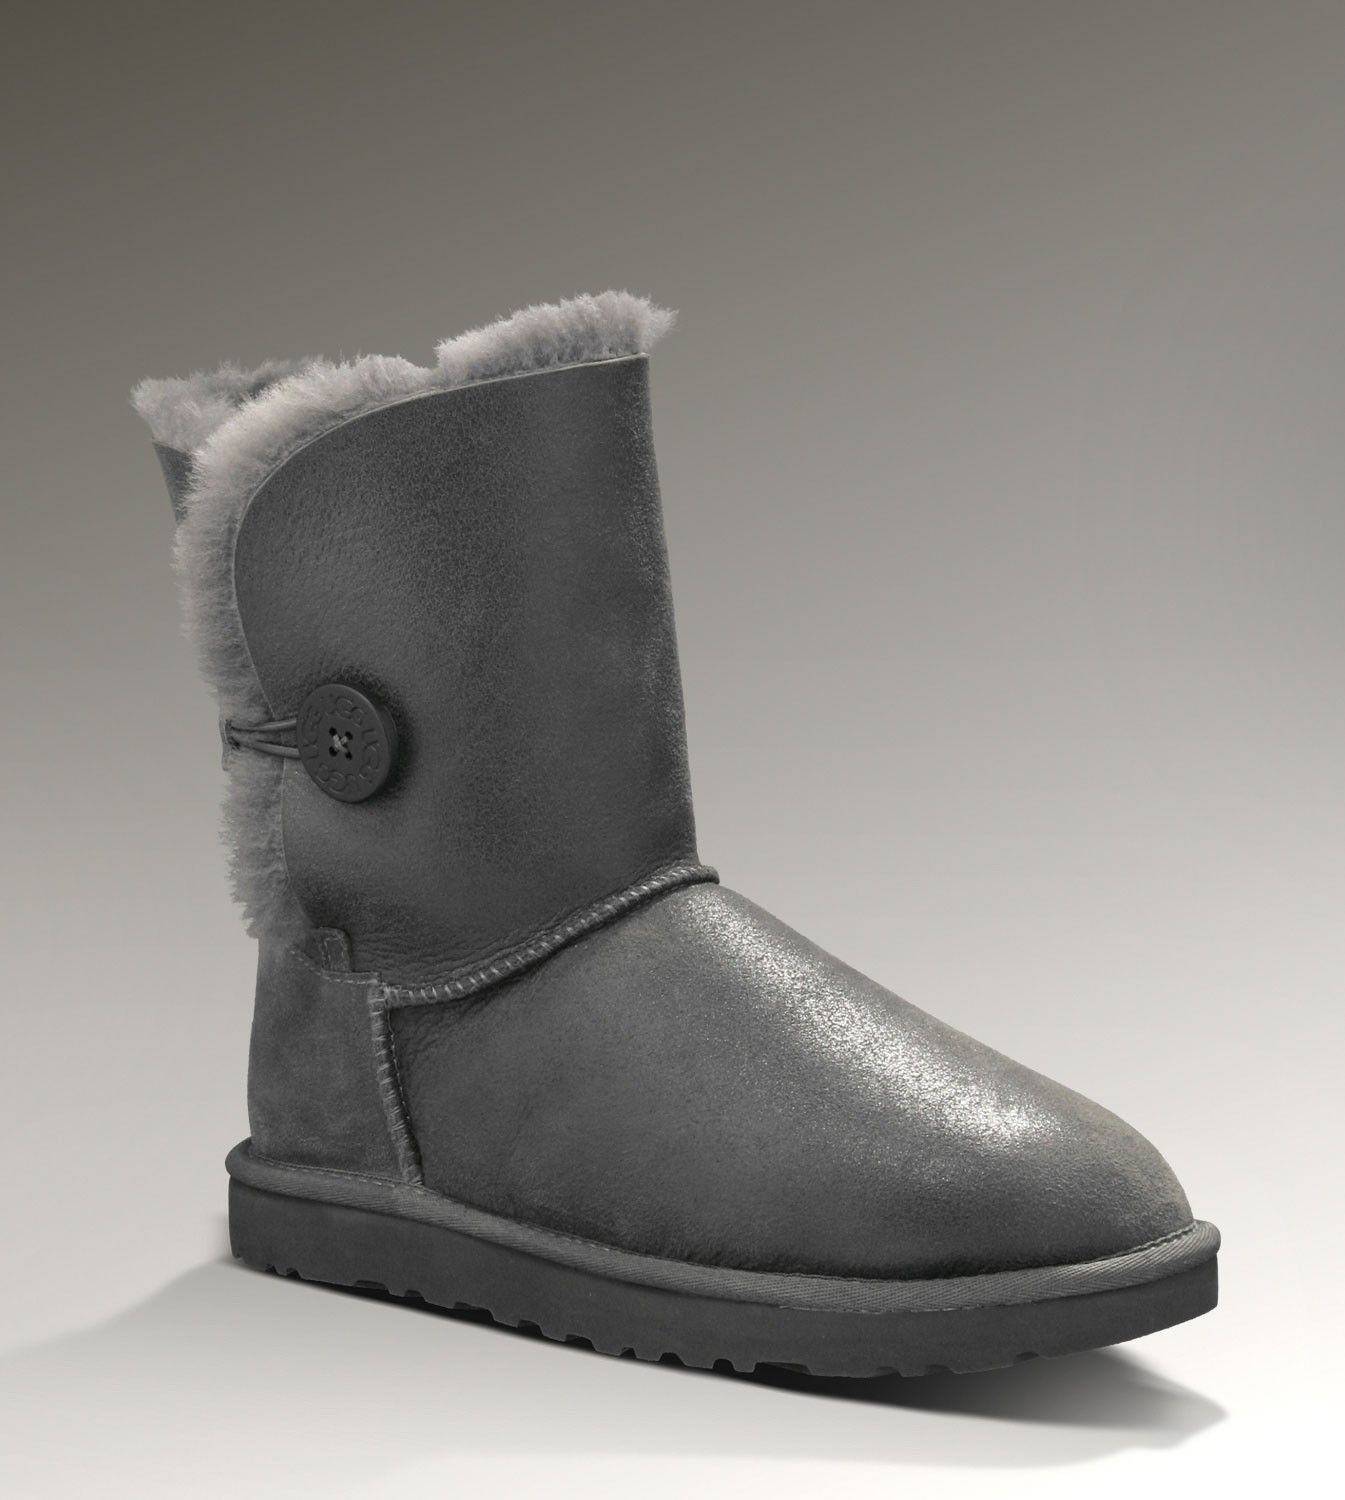 UGG boots with low price and high quality. Visit the site and choose the best